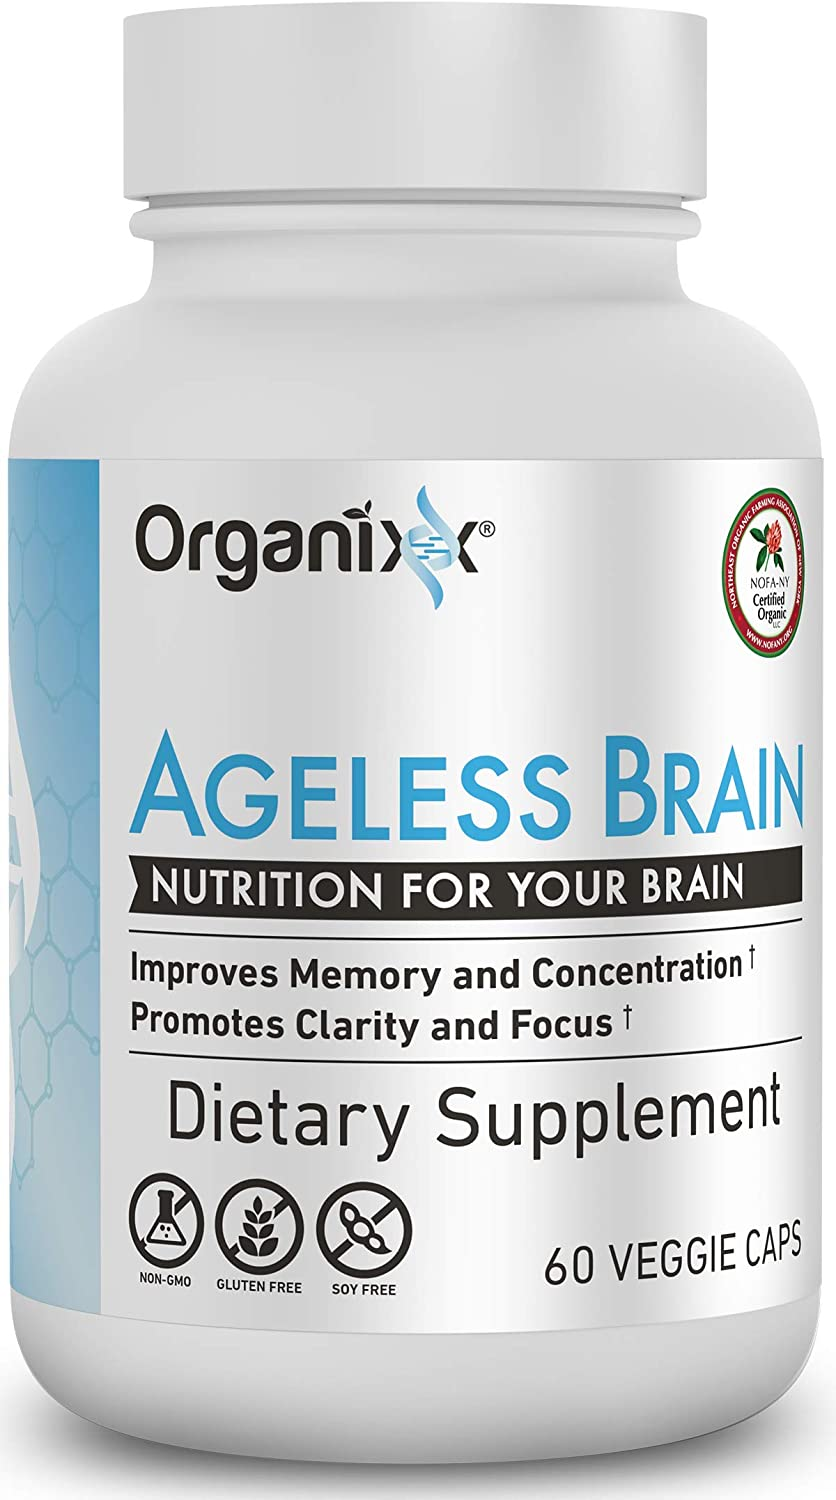 Organixx - Ageless Brain- Powerful Brain Health Support - 60 Capsules - Boost Memory Power, Clarity and Focus, Re-Energize Brain Cells, Promote a Balanced Mood